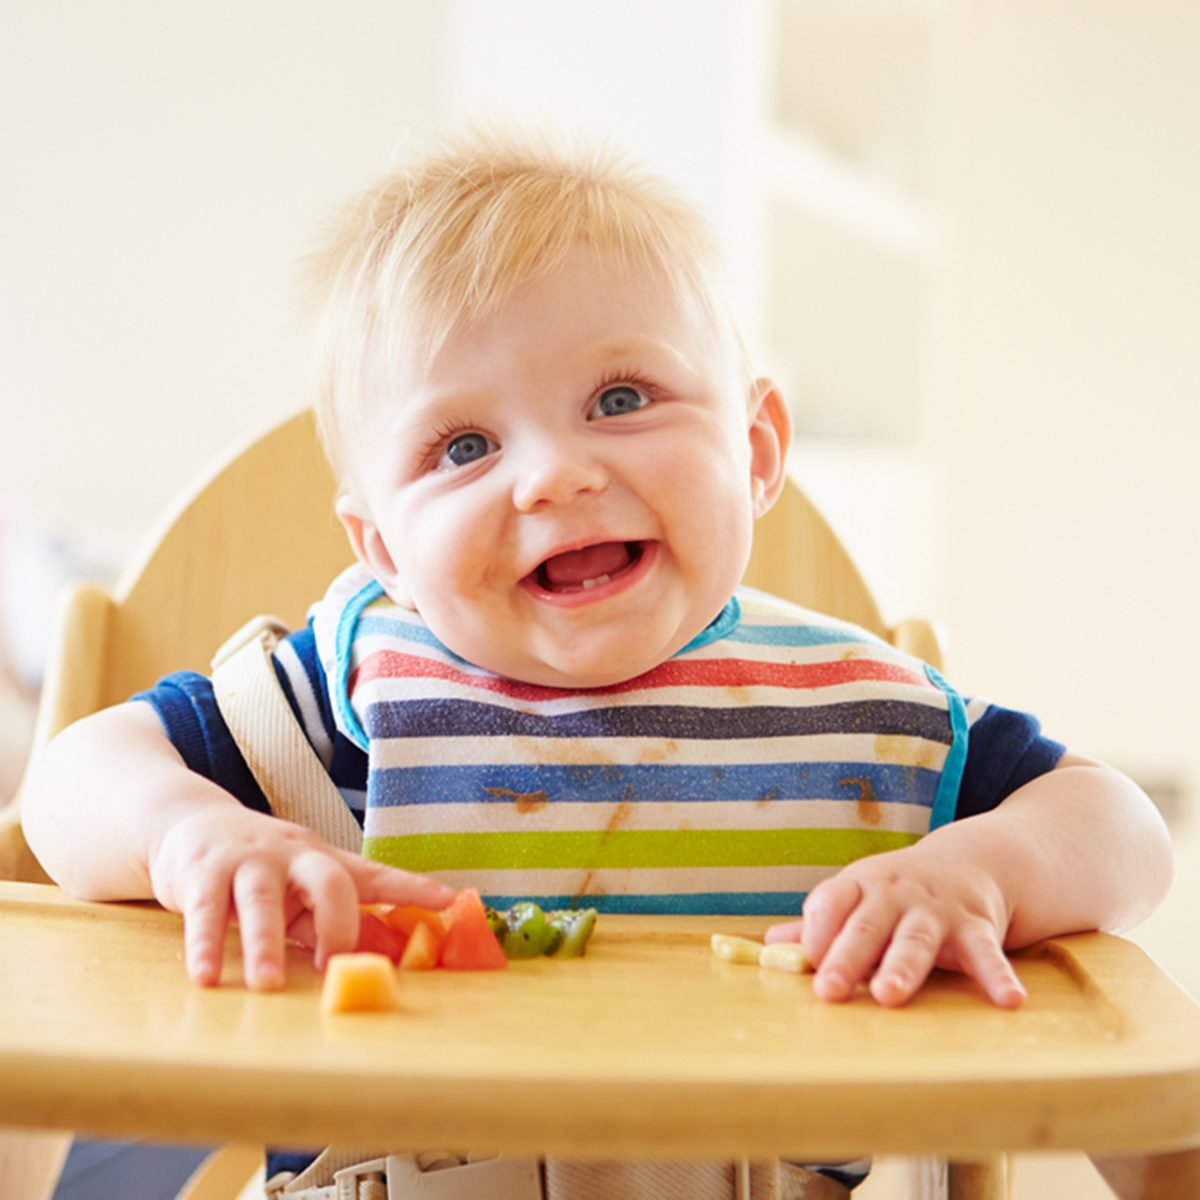 Baby Boy Eating Finger Fods In High Chair